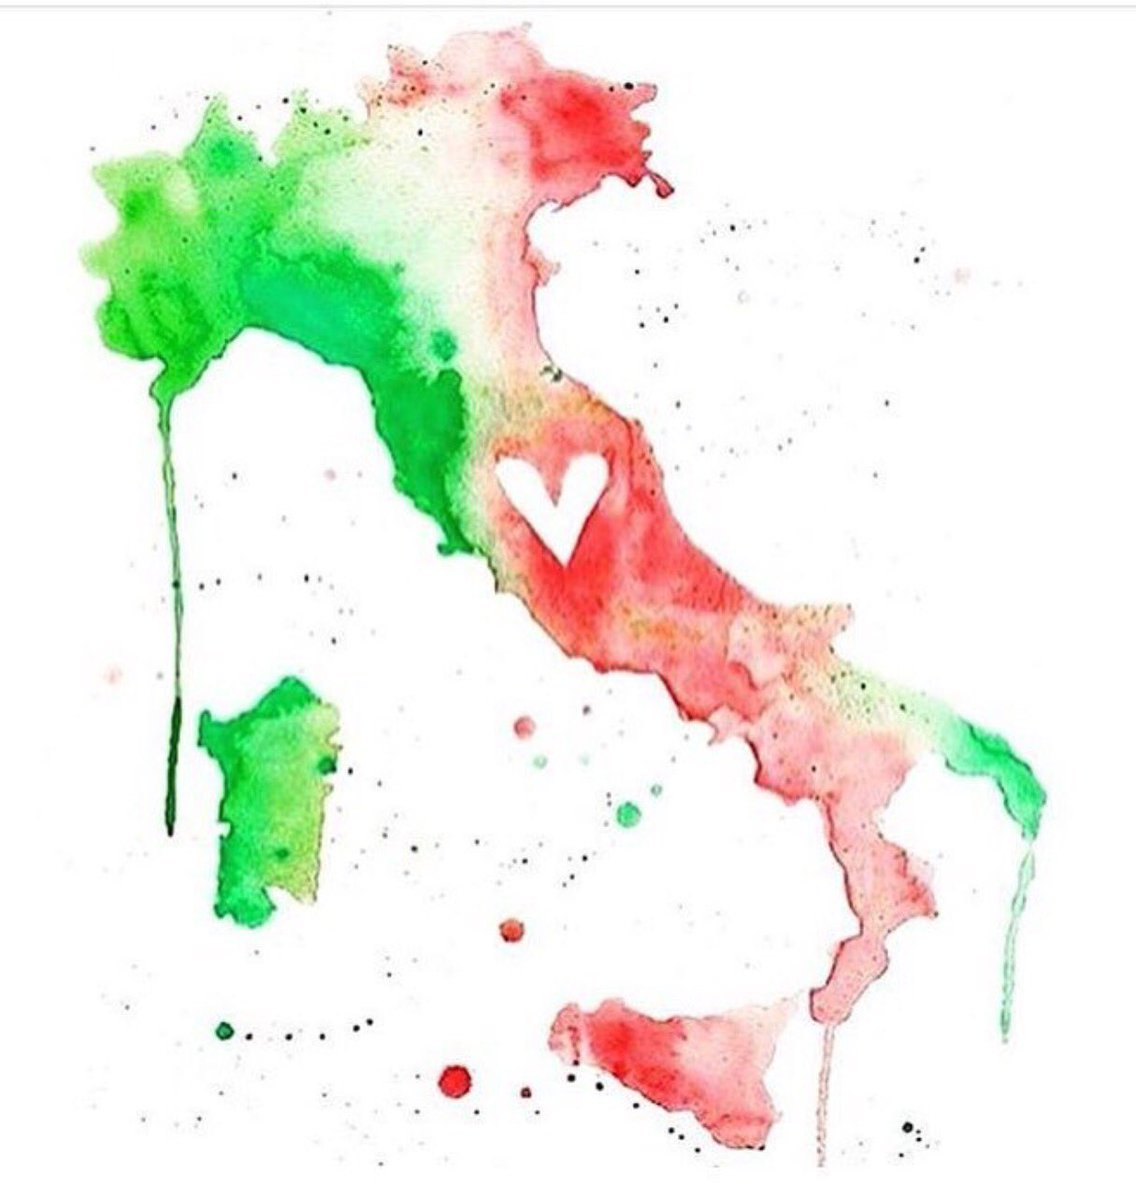 #ItalyEarthquake sending love and prayers Xxoo m ❤️❤️❤️ https://t.co/hTDzmIV1Dt